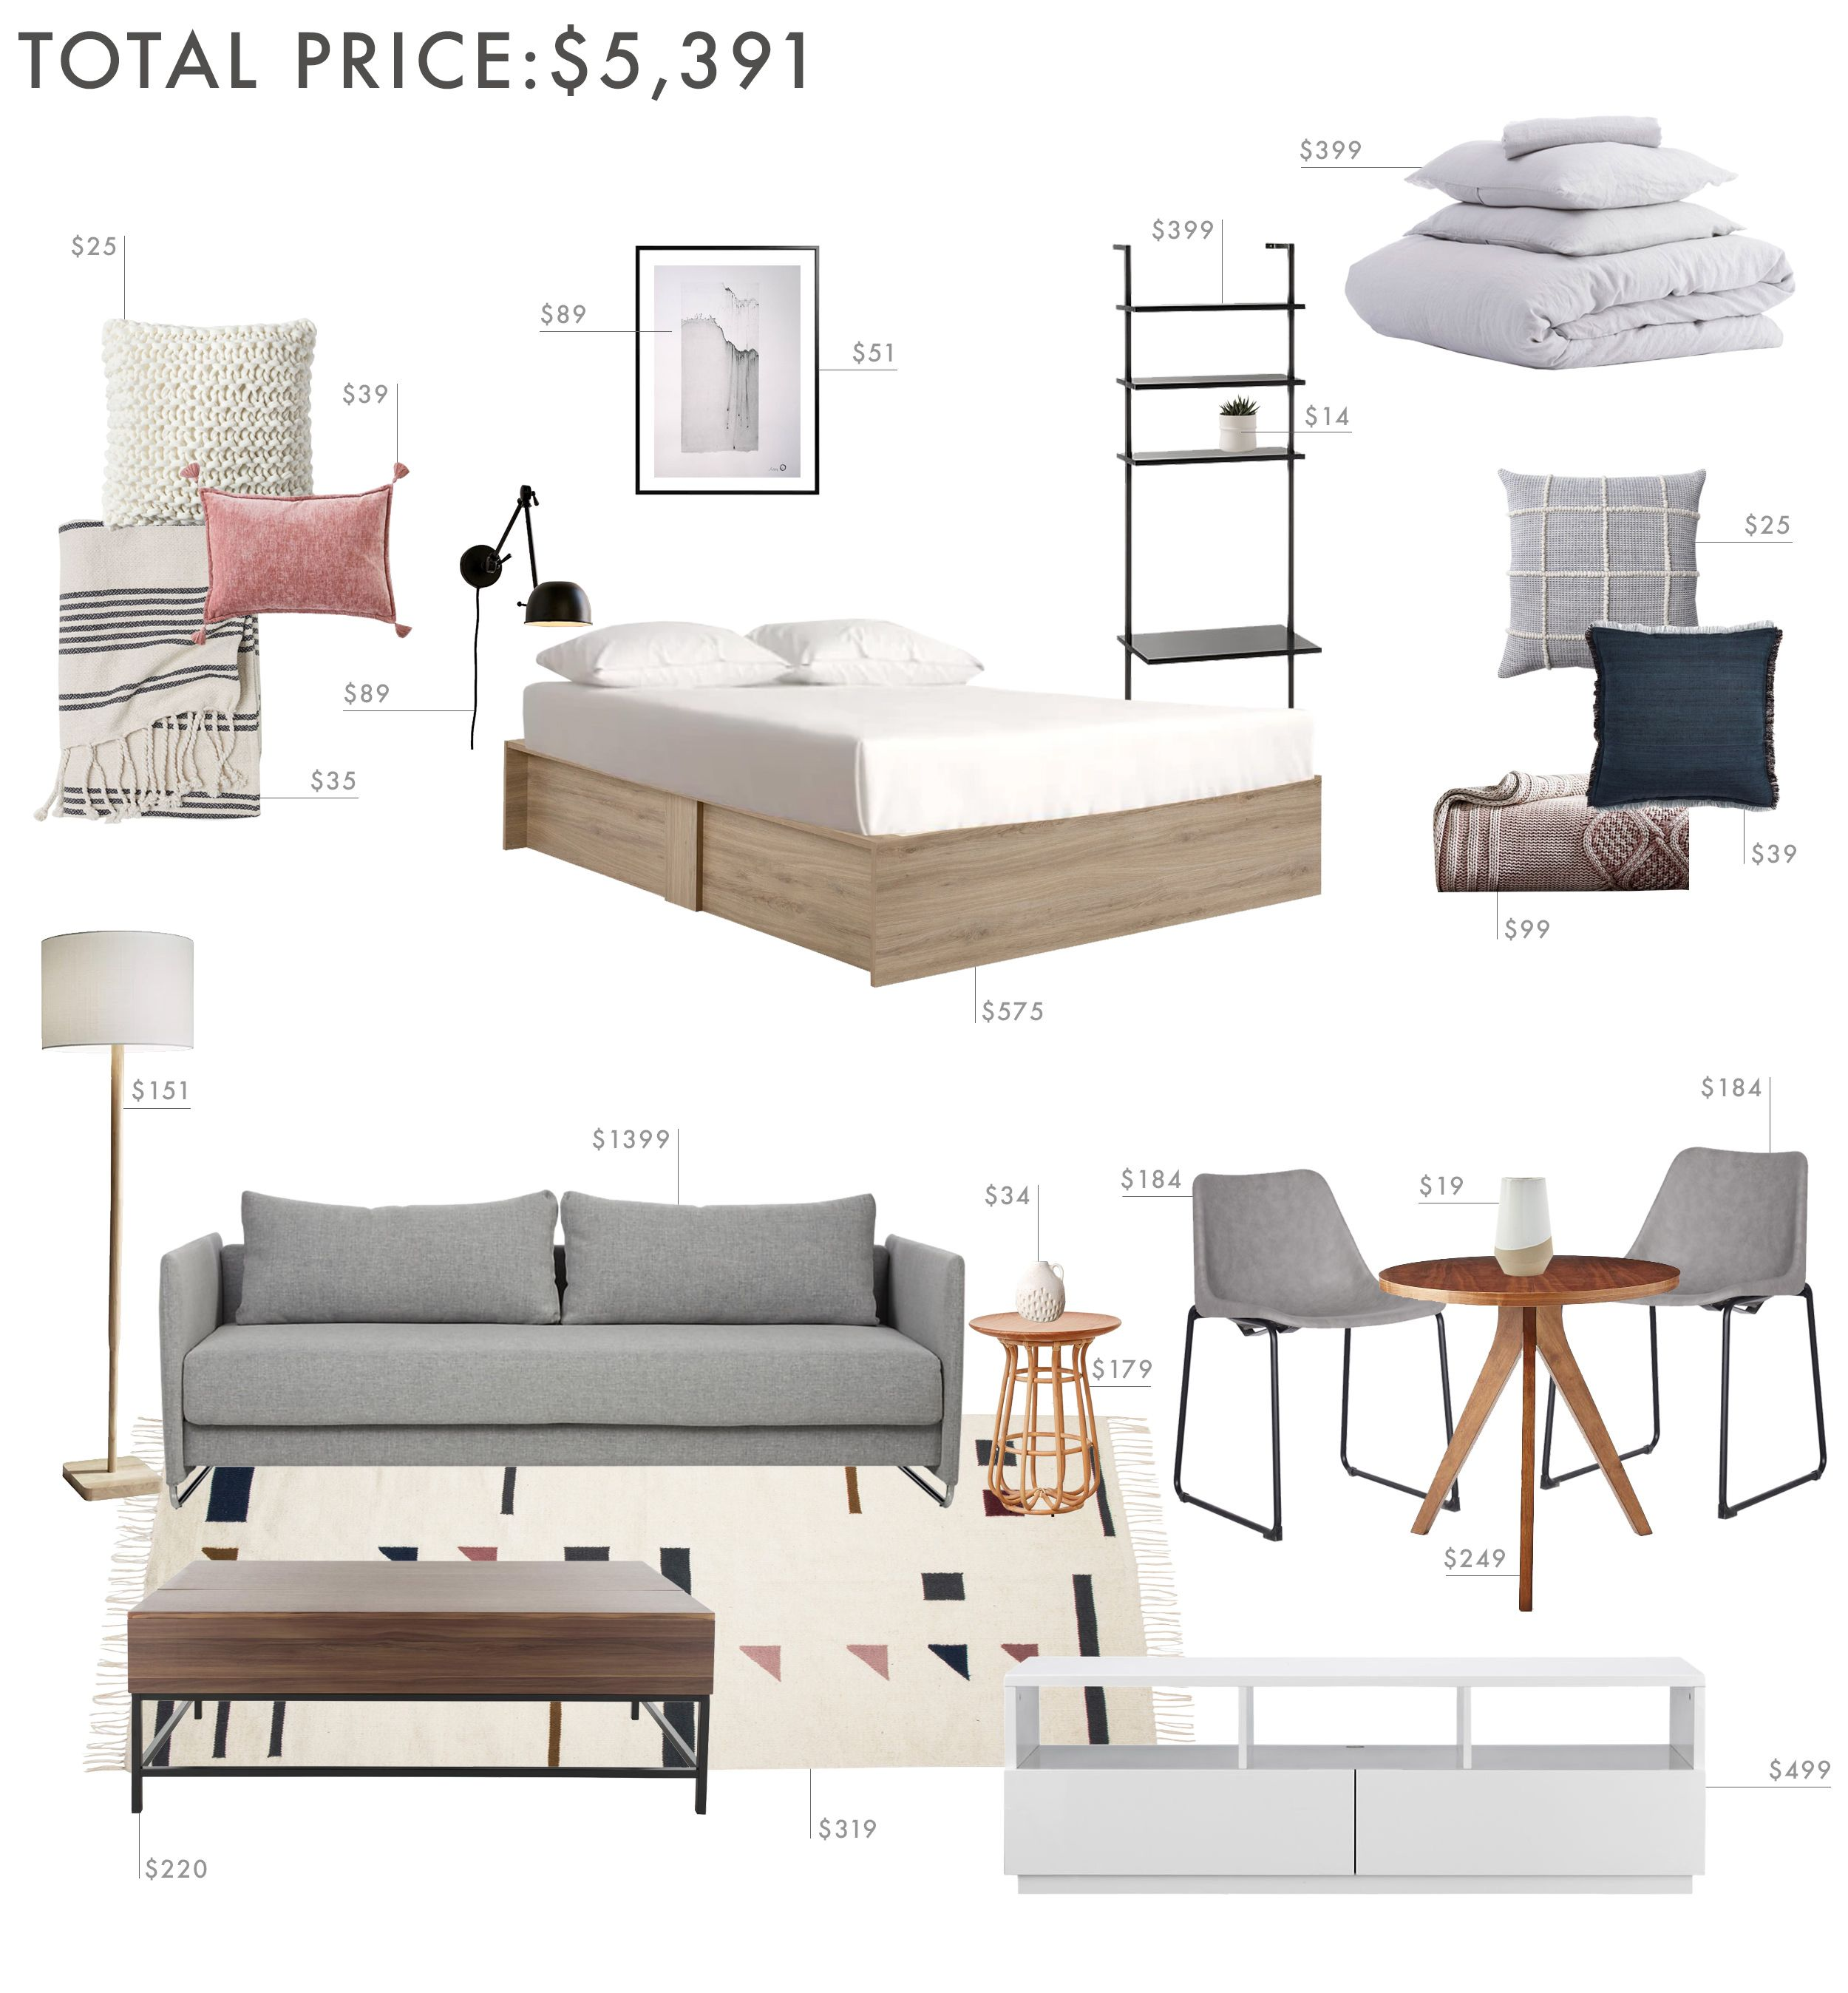 Help Getting A Apartment: 3 Budgets, 3 Designs: How To Decorate A Studio Apartment